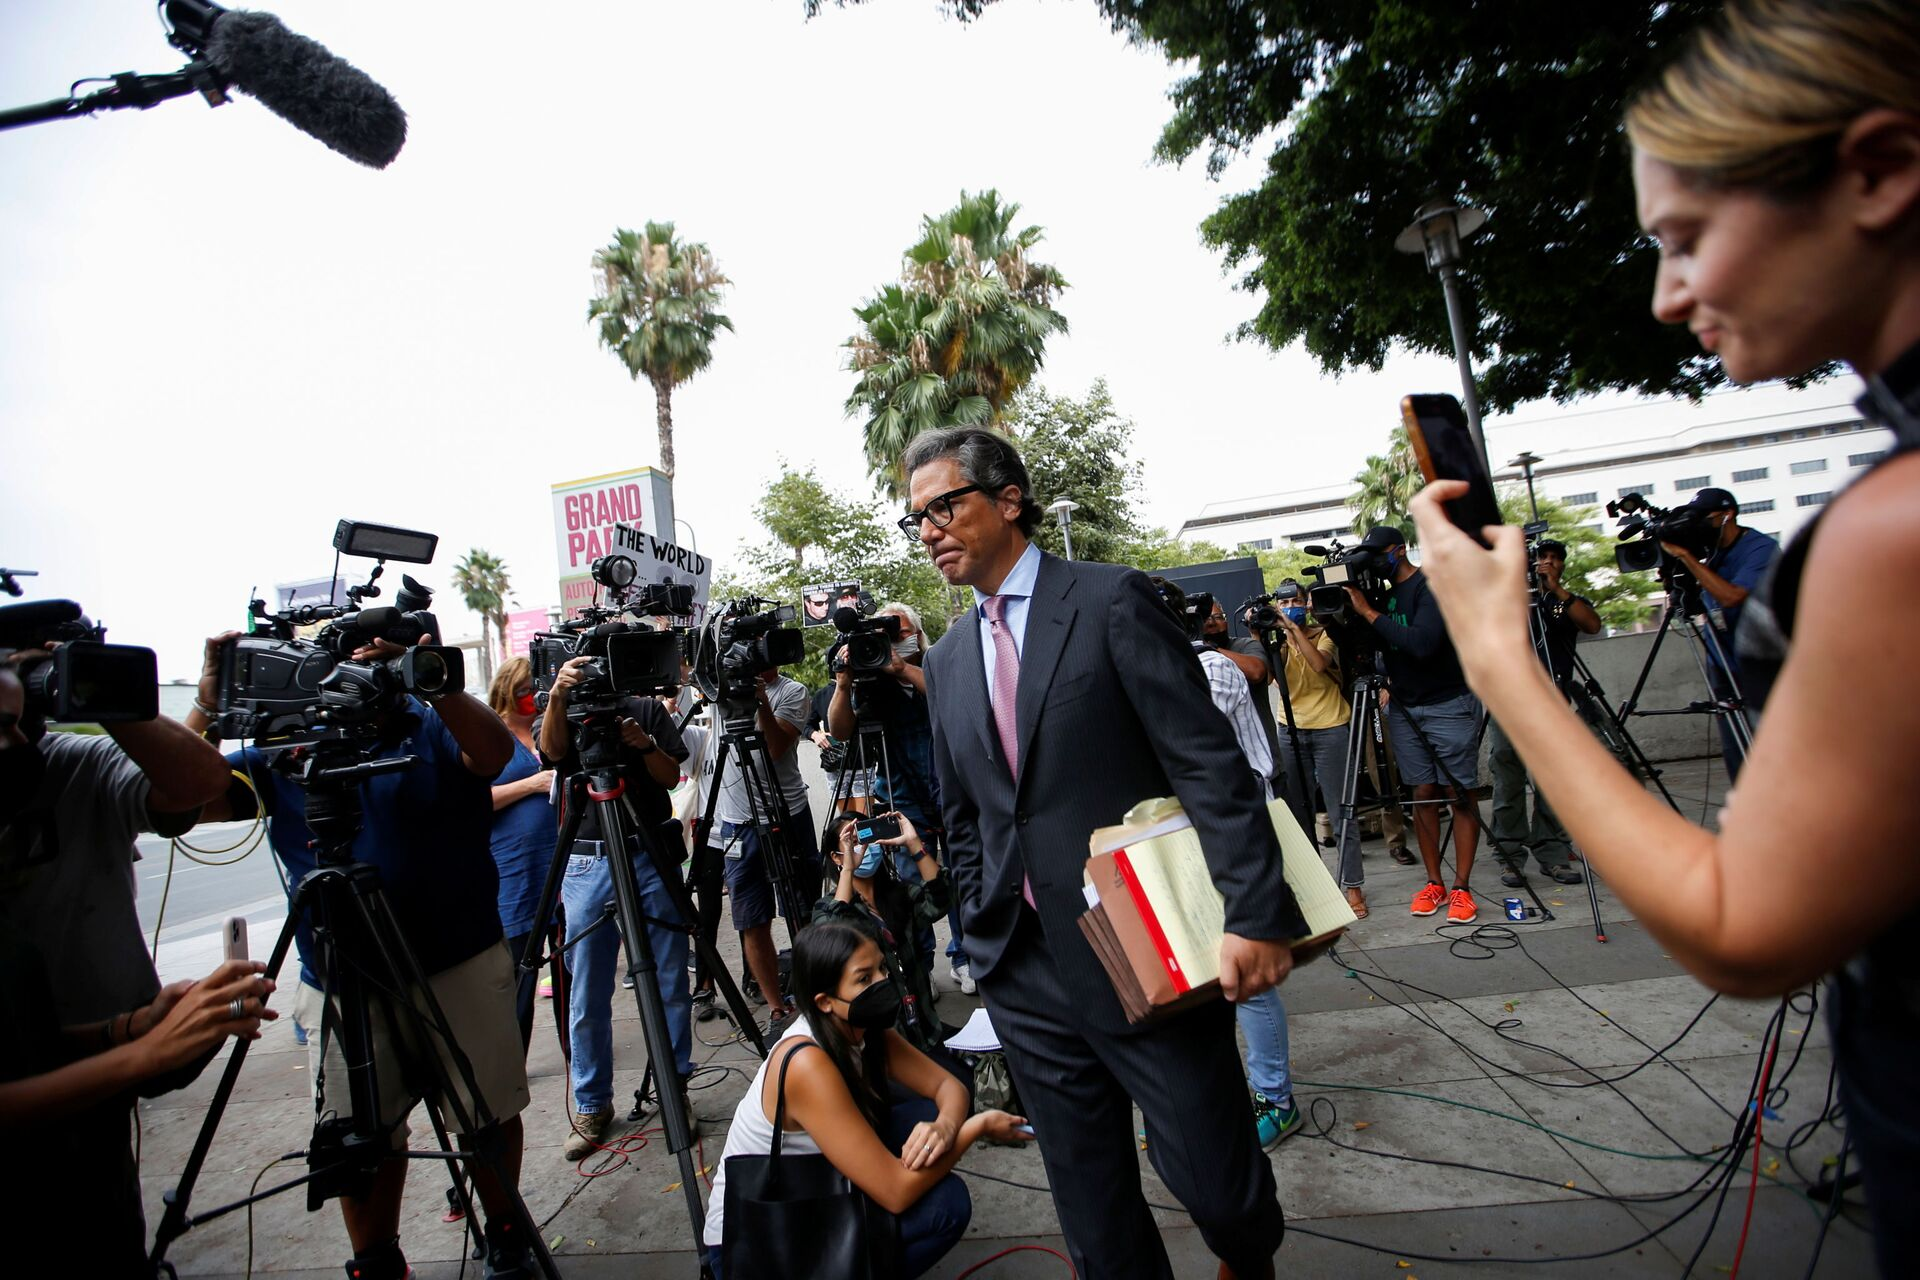 Mathew Rosengart, attorney for pop star Britney Spears, is pictured on the day of a conservatorship case hearing at Stanley Mosk Courthouse in Los Angeles, California, U.S., July 26, 2021 - Sputnik International, 1920, 07.09.2021